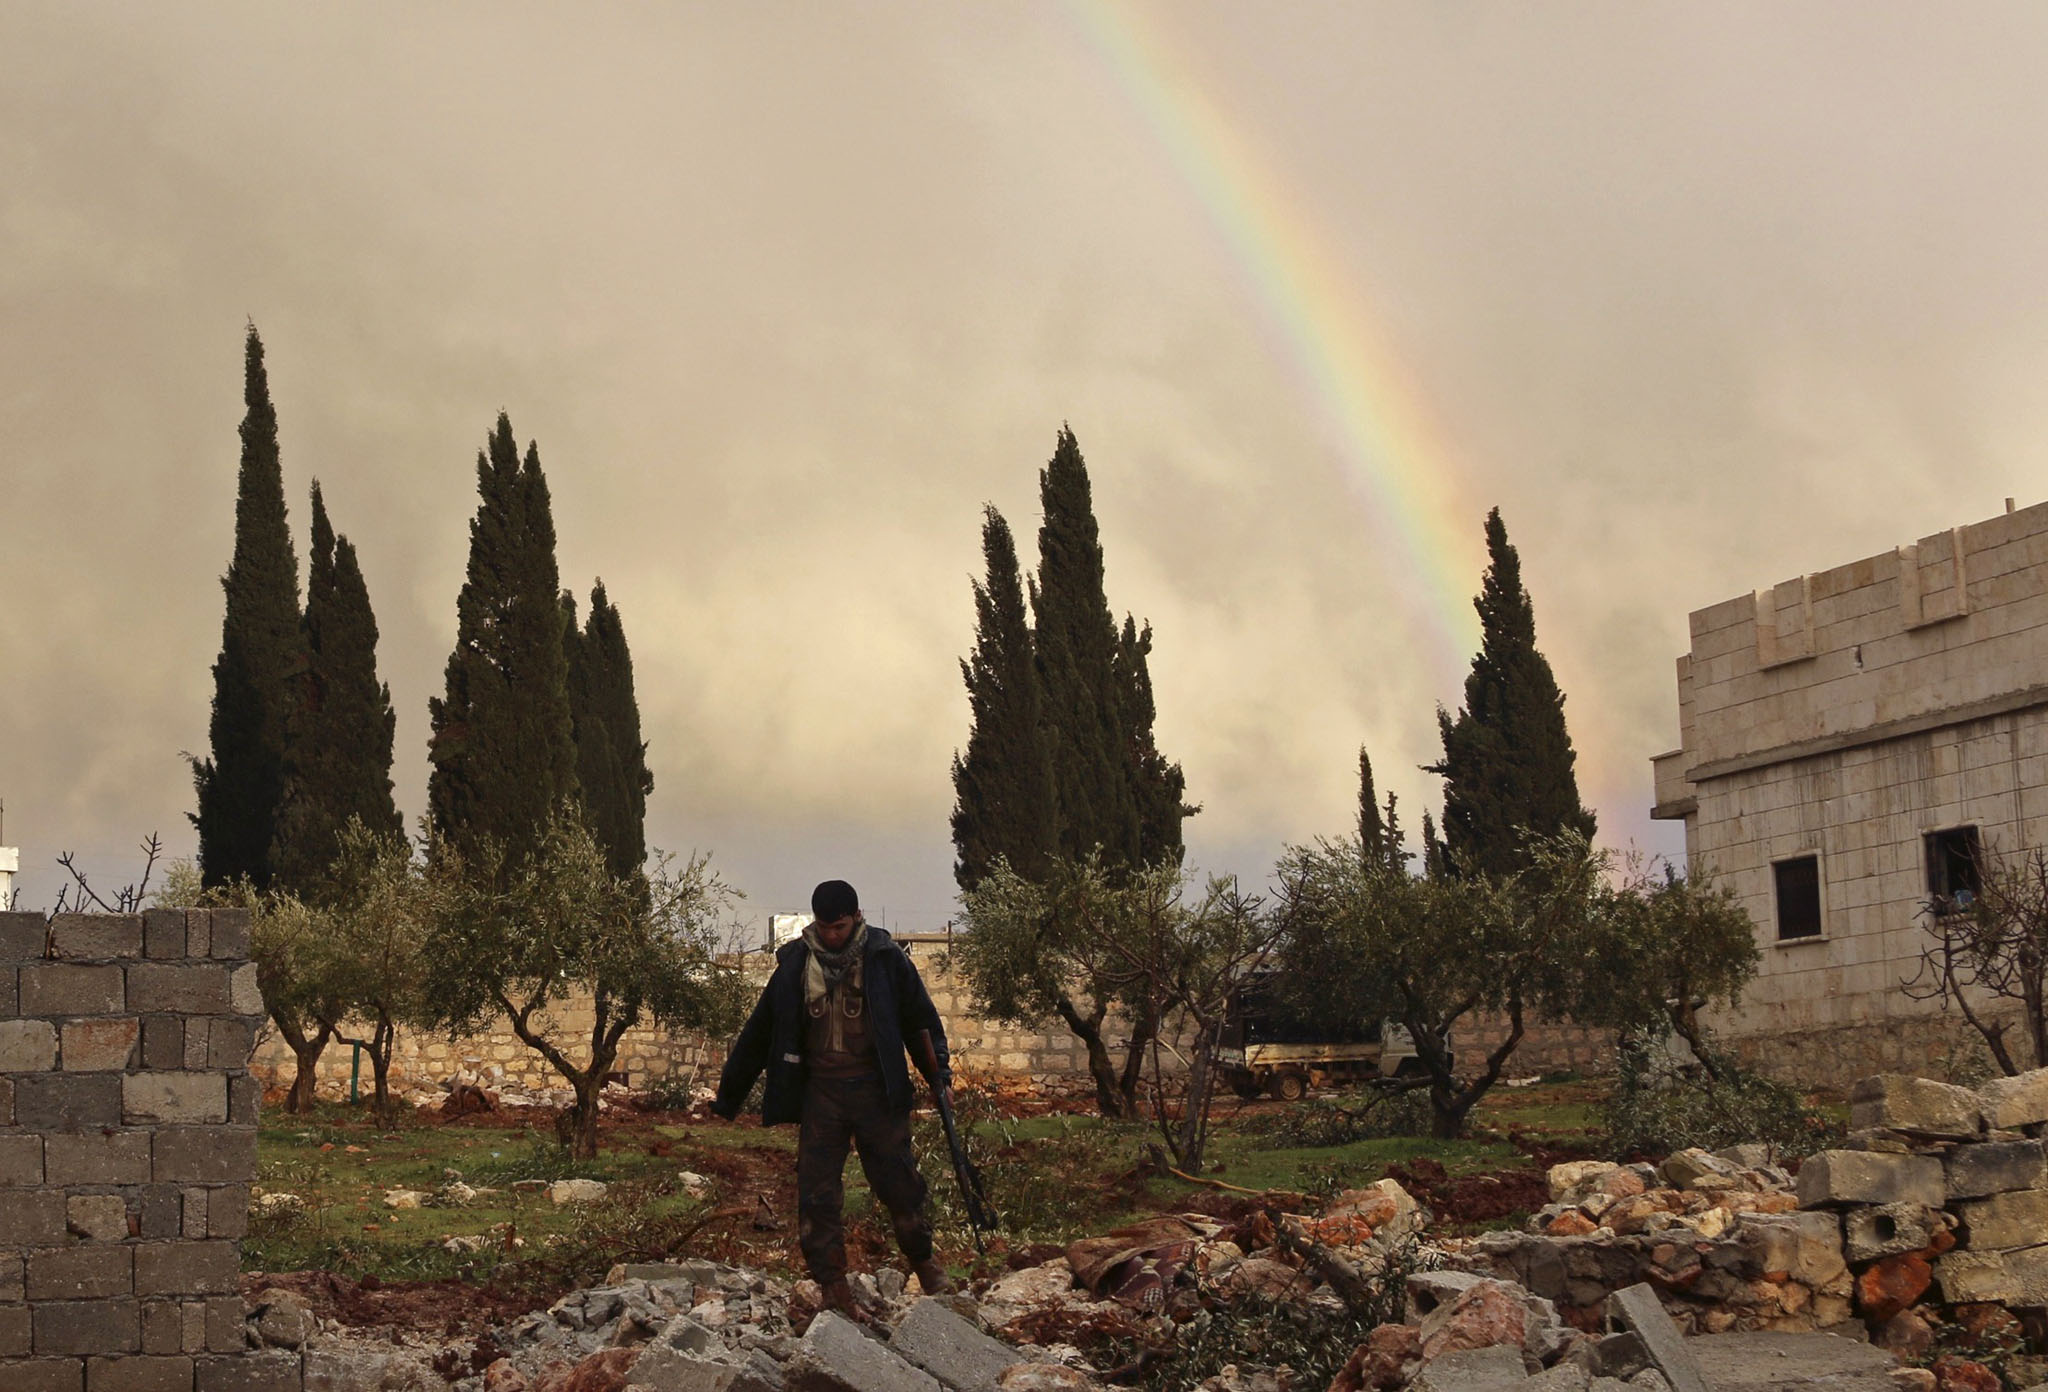 A rebel fighter carries his weapon as he walks in front of a rainbow in Ratian village, north of Aleppo...A rebel fighter carries his weapon as he walks in front of a rainbow in Ratian village, north of Aleppo, after what the rebels said was an offensive against them by forces loyal to Syria's President Bashar al-Assad that attempted to advance in the village but failed to February 18, 2015. Battles in and around the Syrian city of Aleppo have killed at least 70 pro-government fighters and more than 80 insurgents after the army launched an offensive there, a monitoring group said on Wednesday. Picture taken February 18, 2015. REUTERS/Ammar Abdullah    (SYRIA - Tags: POLITICS CIVIL UNREST CONFLICT)